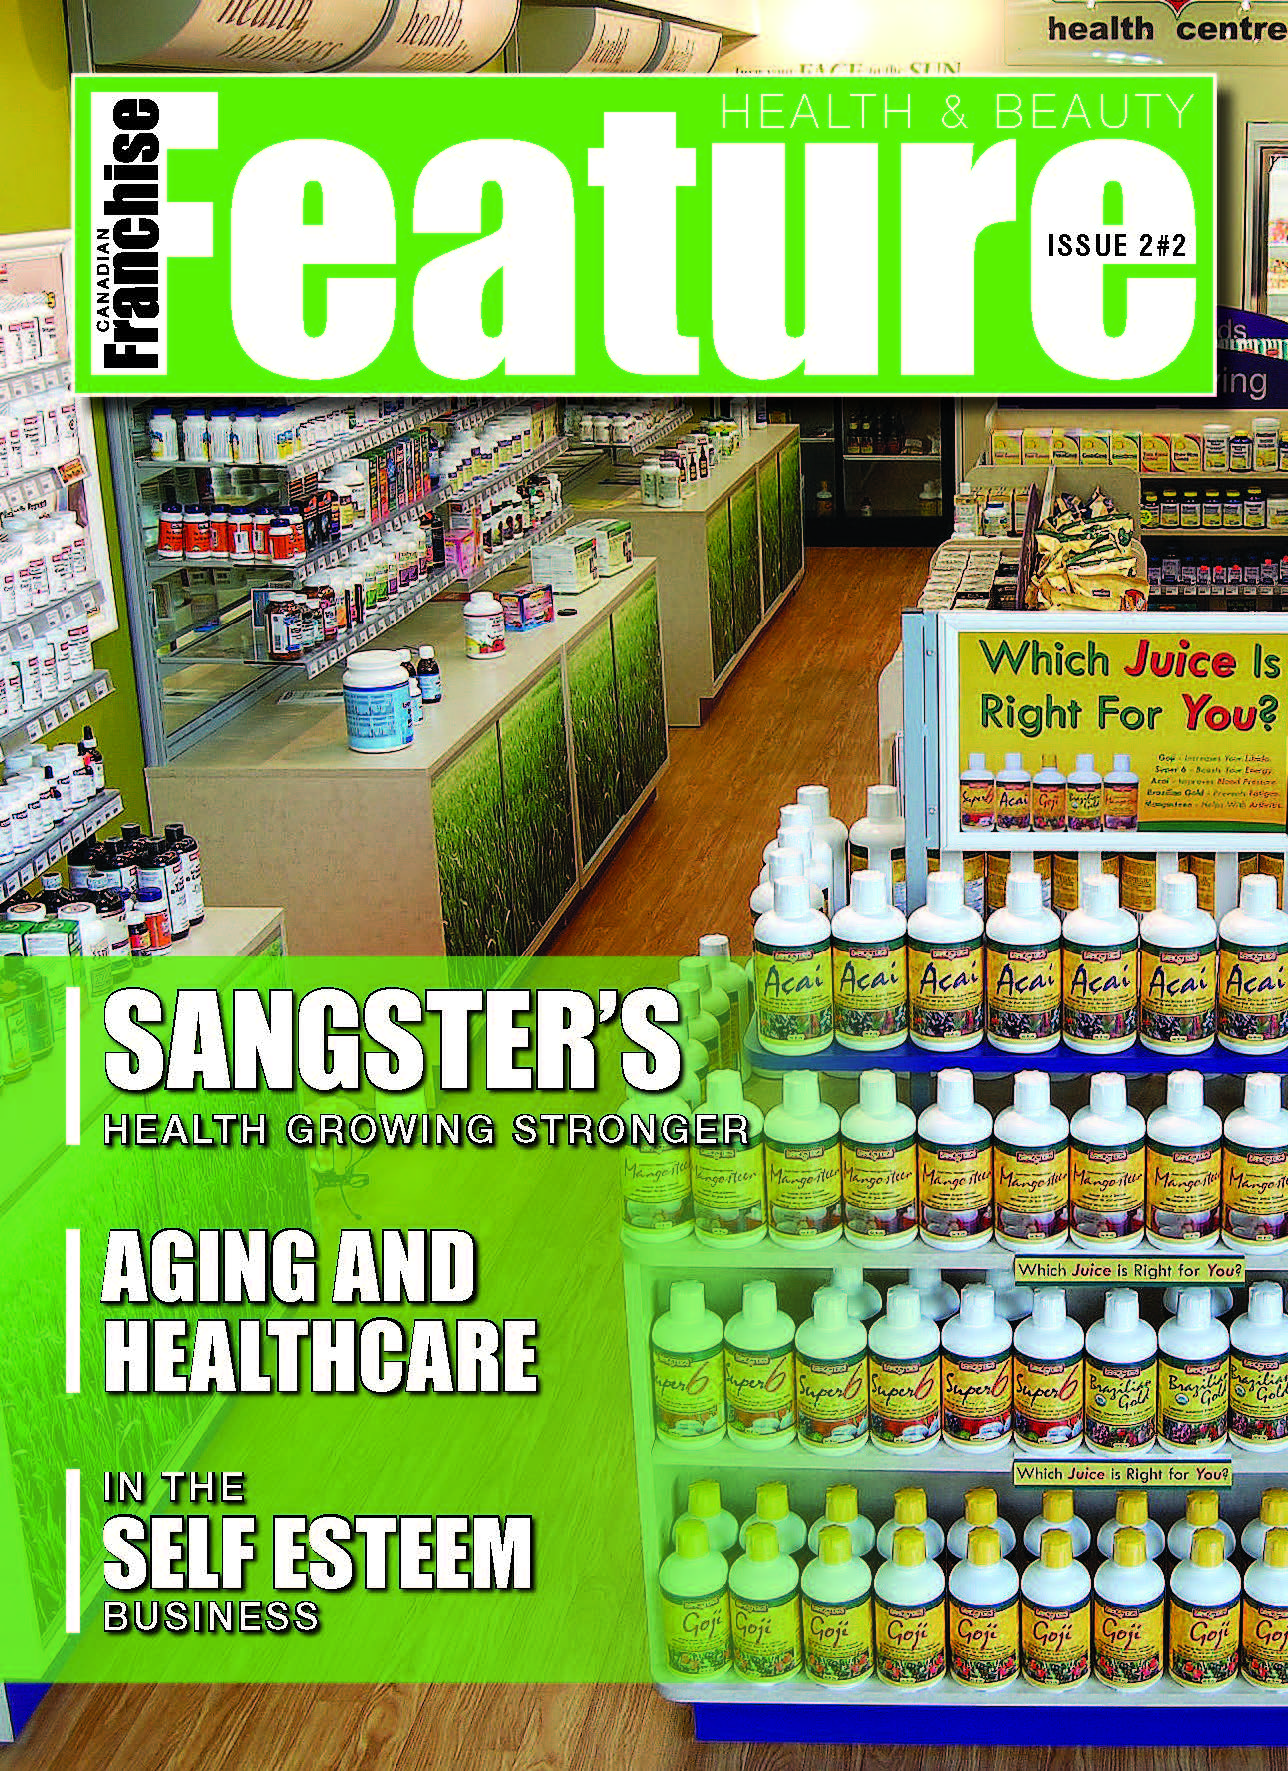 Cover, Volume 2 Issue 2 Sangster's Feature